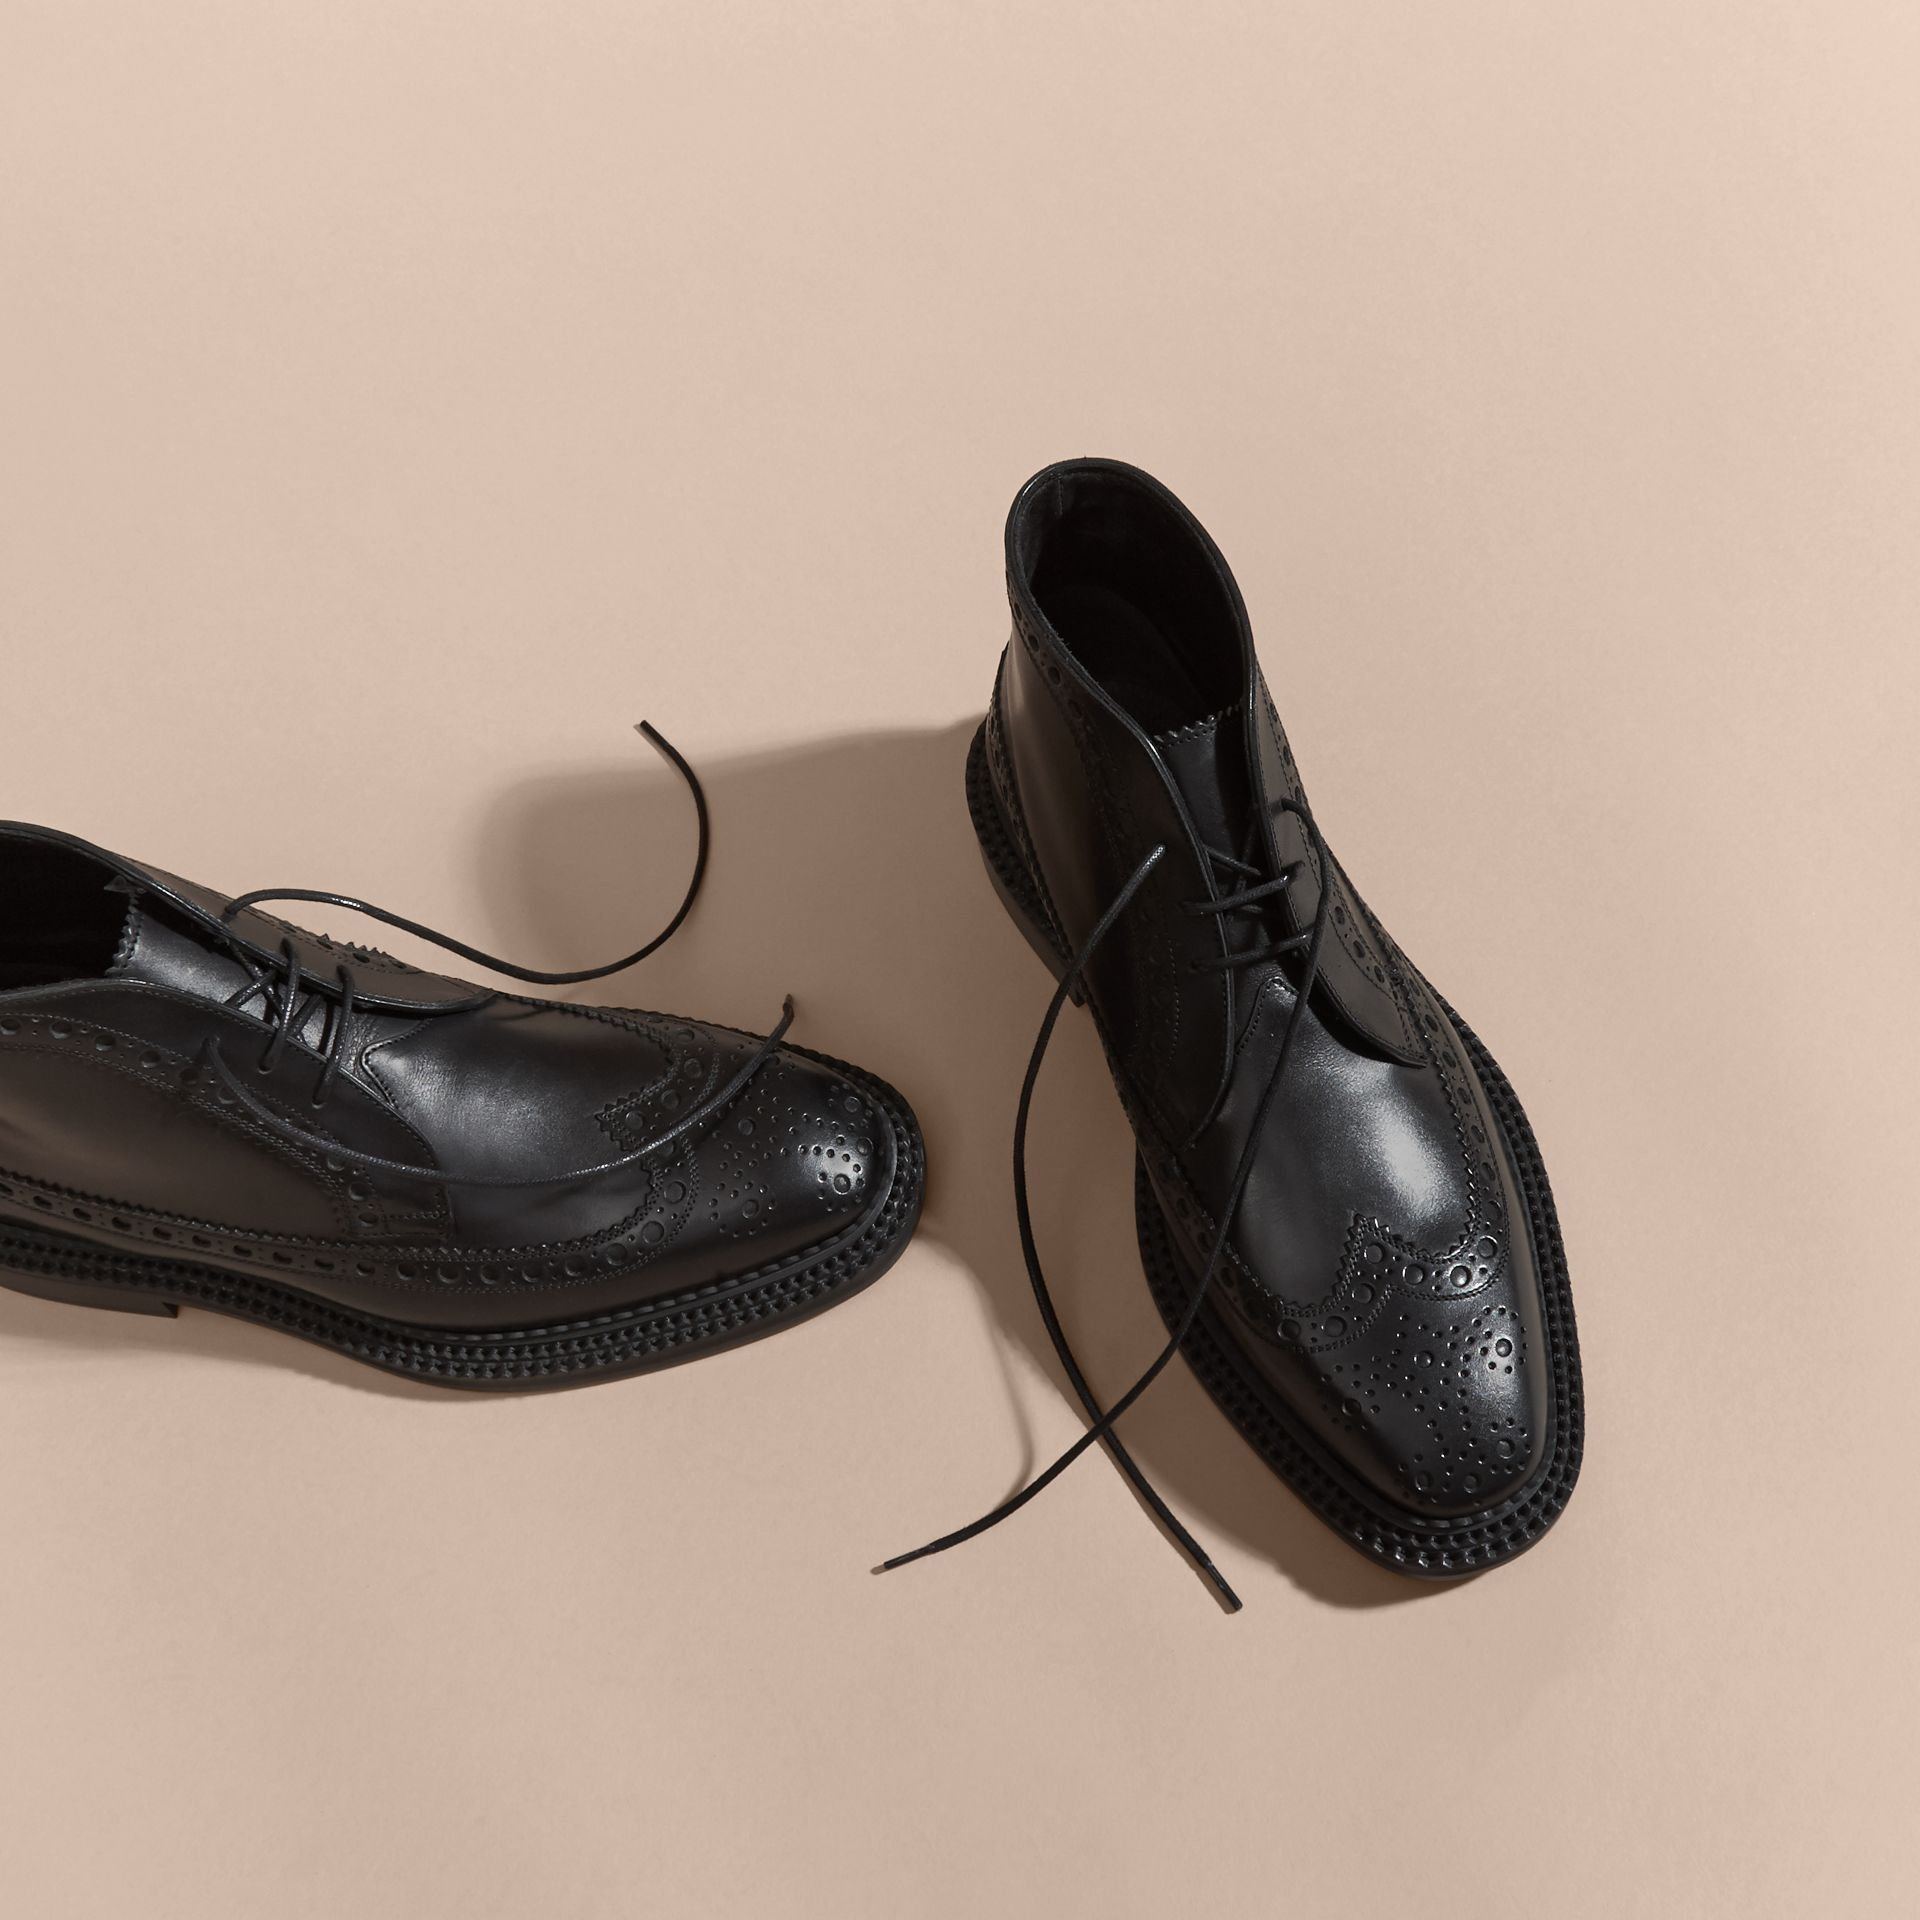 Leather Brogue Boots in Black - Men | Burberry - gallery image 3